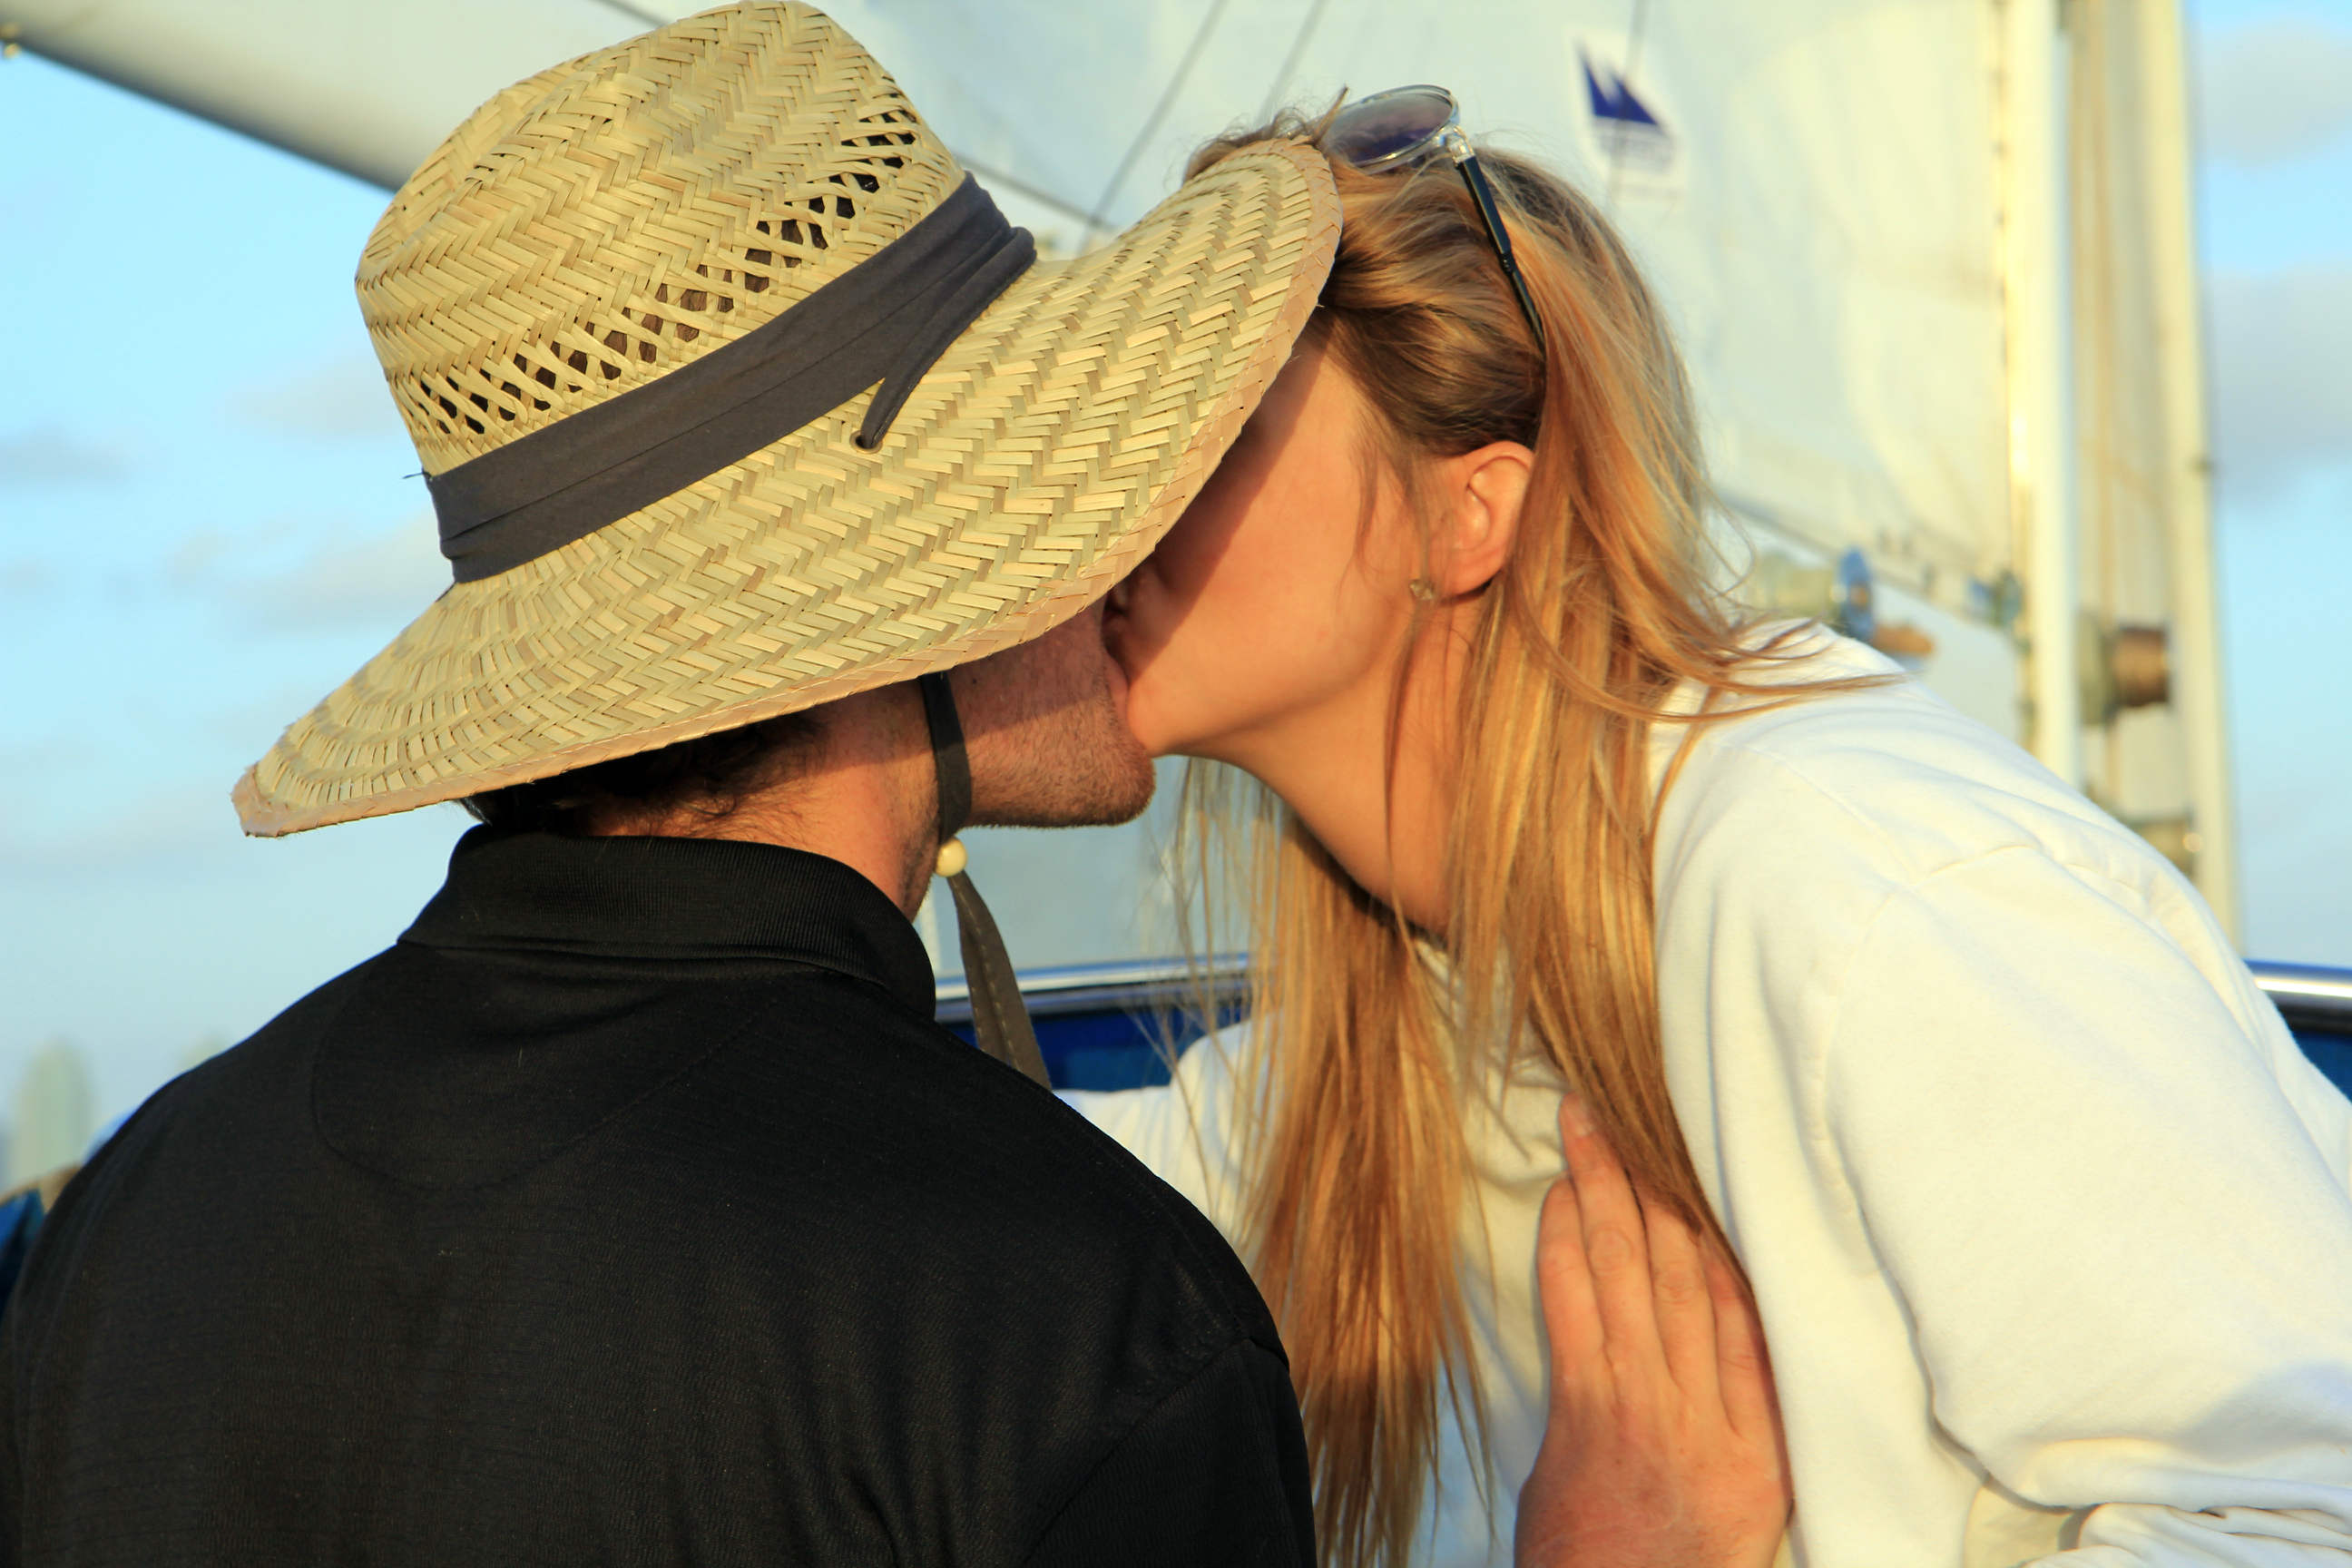 Private proposal on Sailboat for hire. Yacht Proposal with San Diego Sailing Tours.